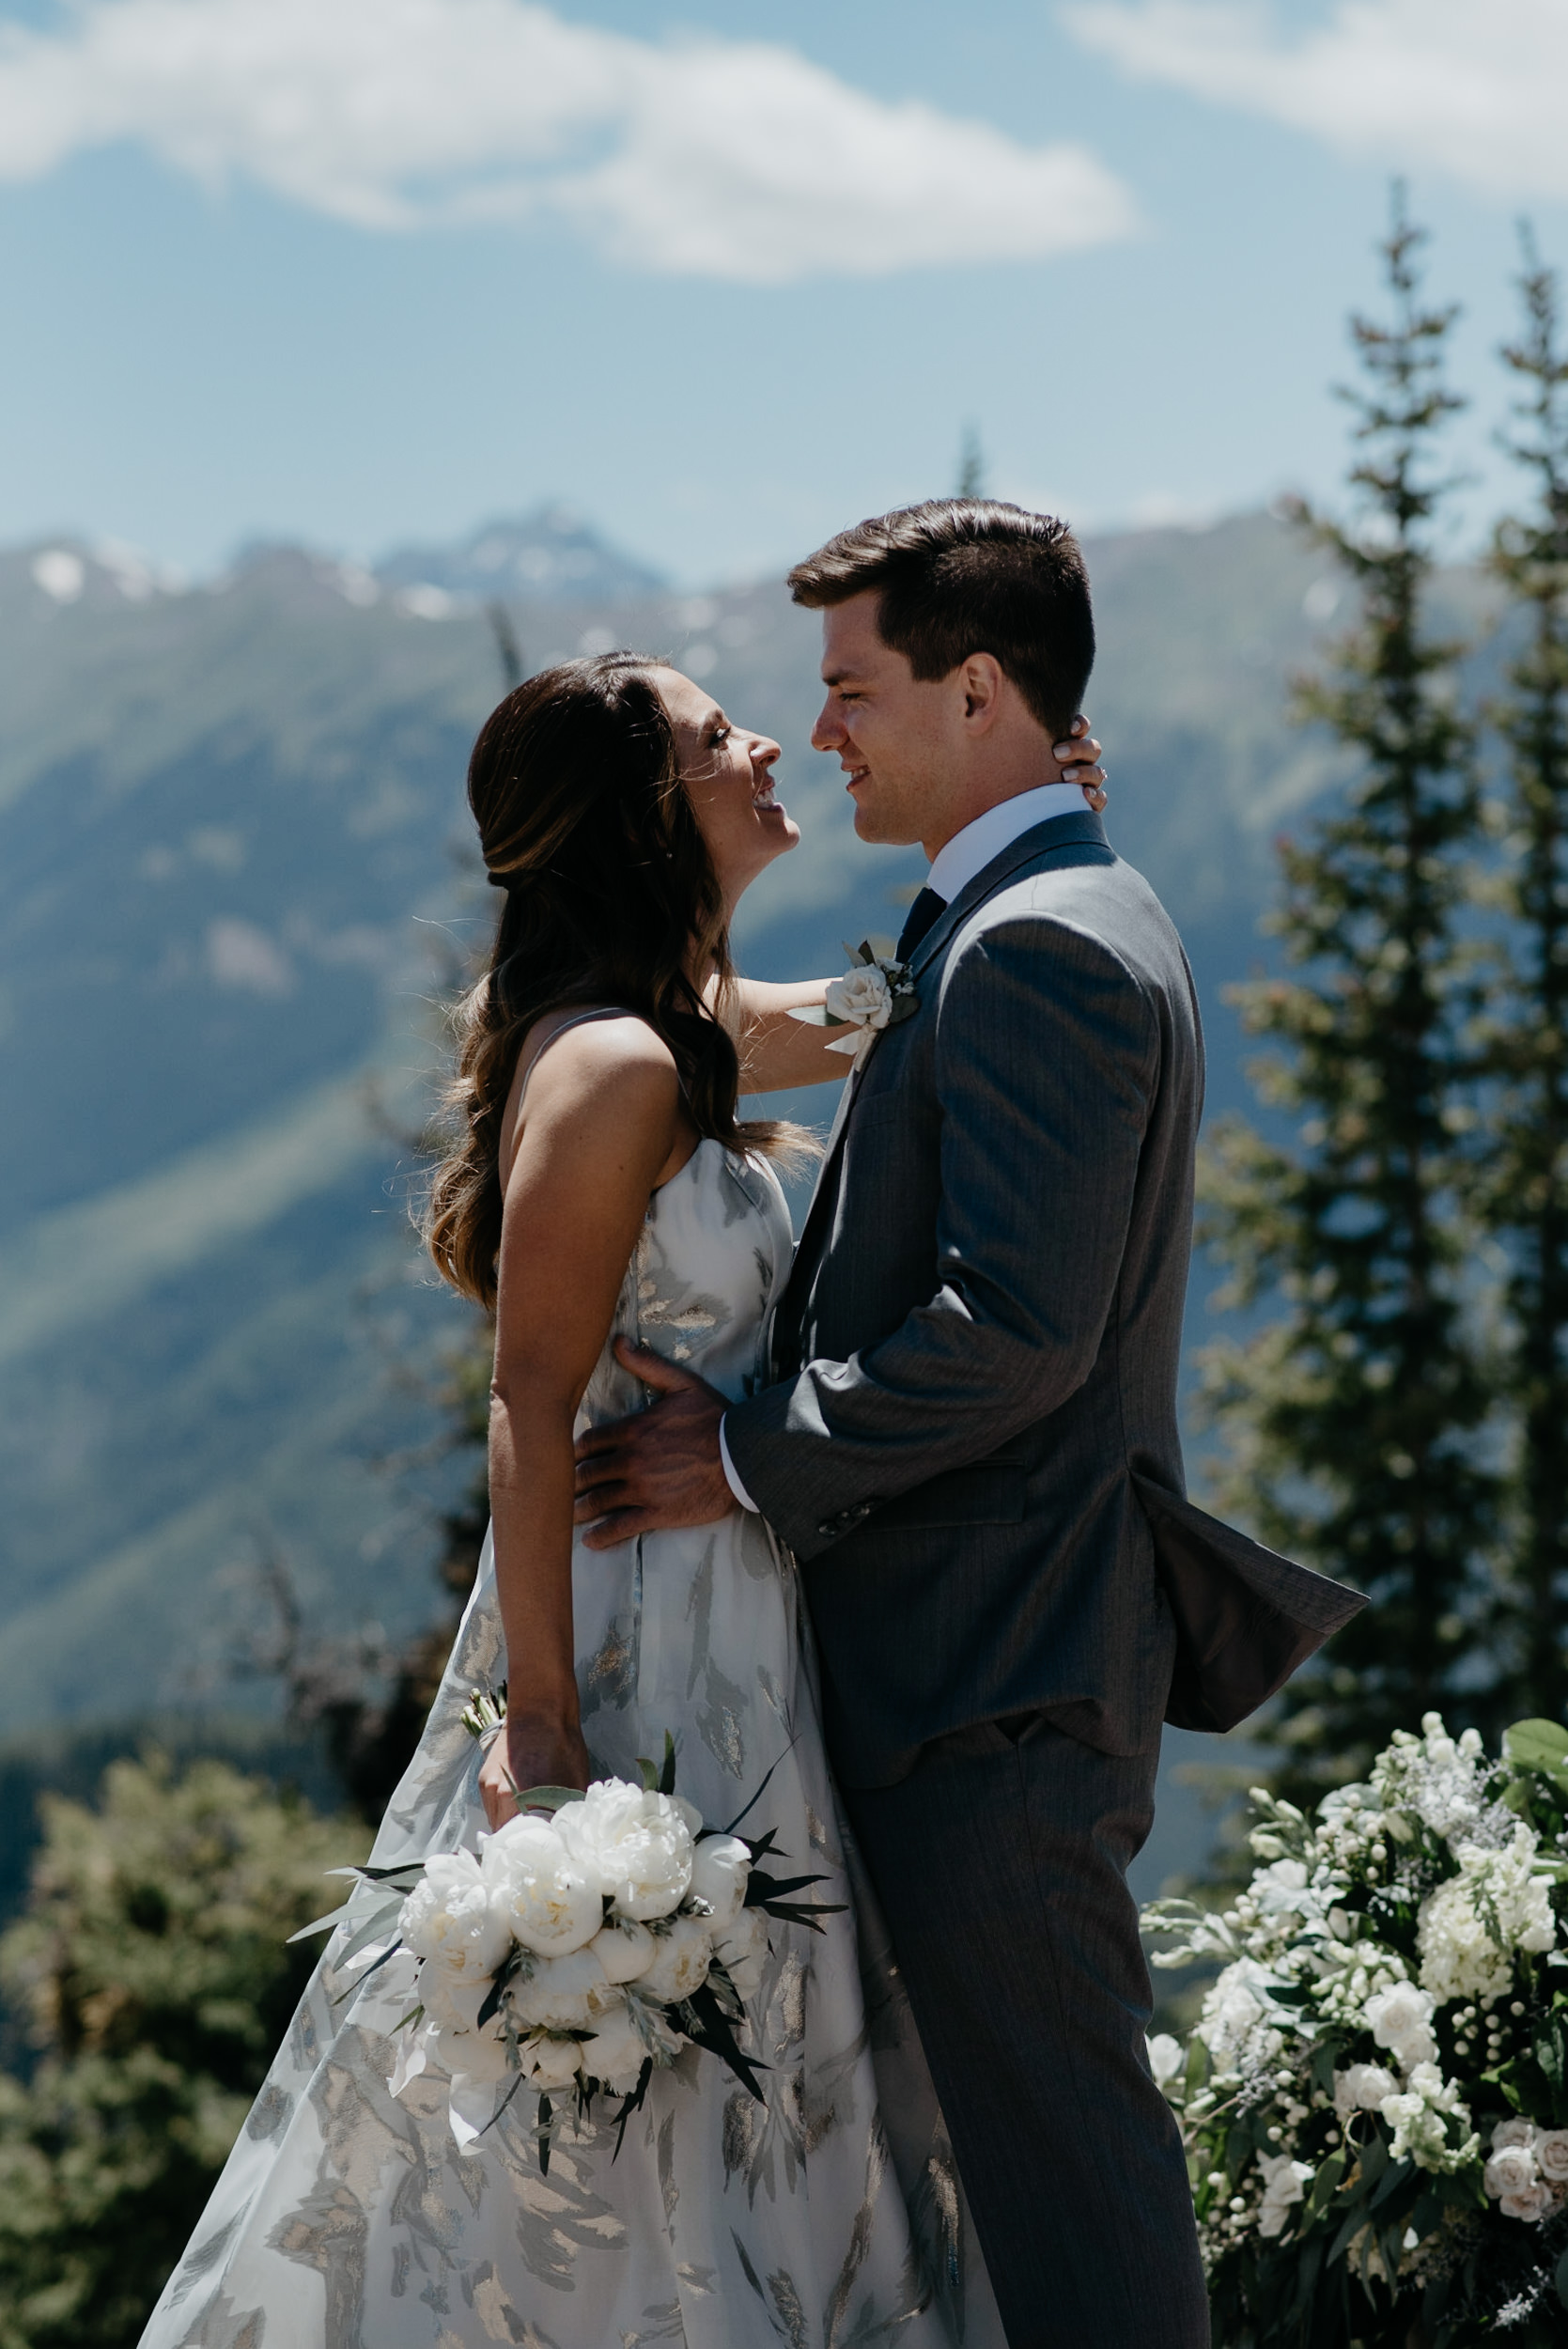 Colorado wedding and elopement photographer.